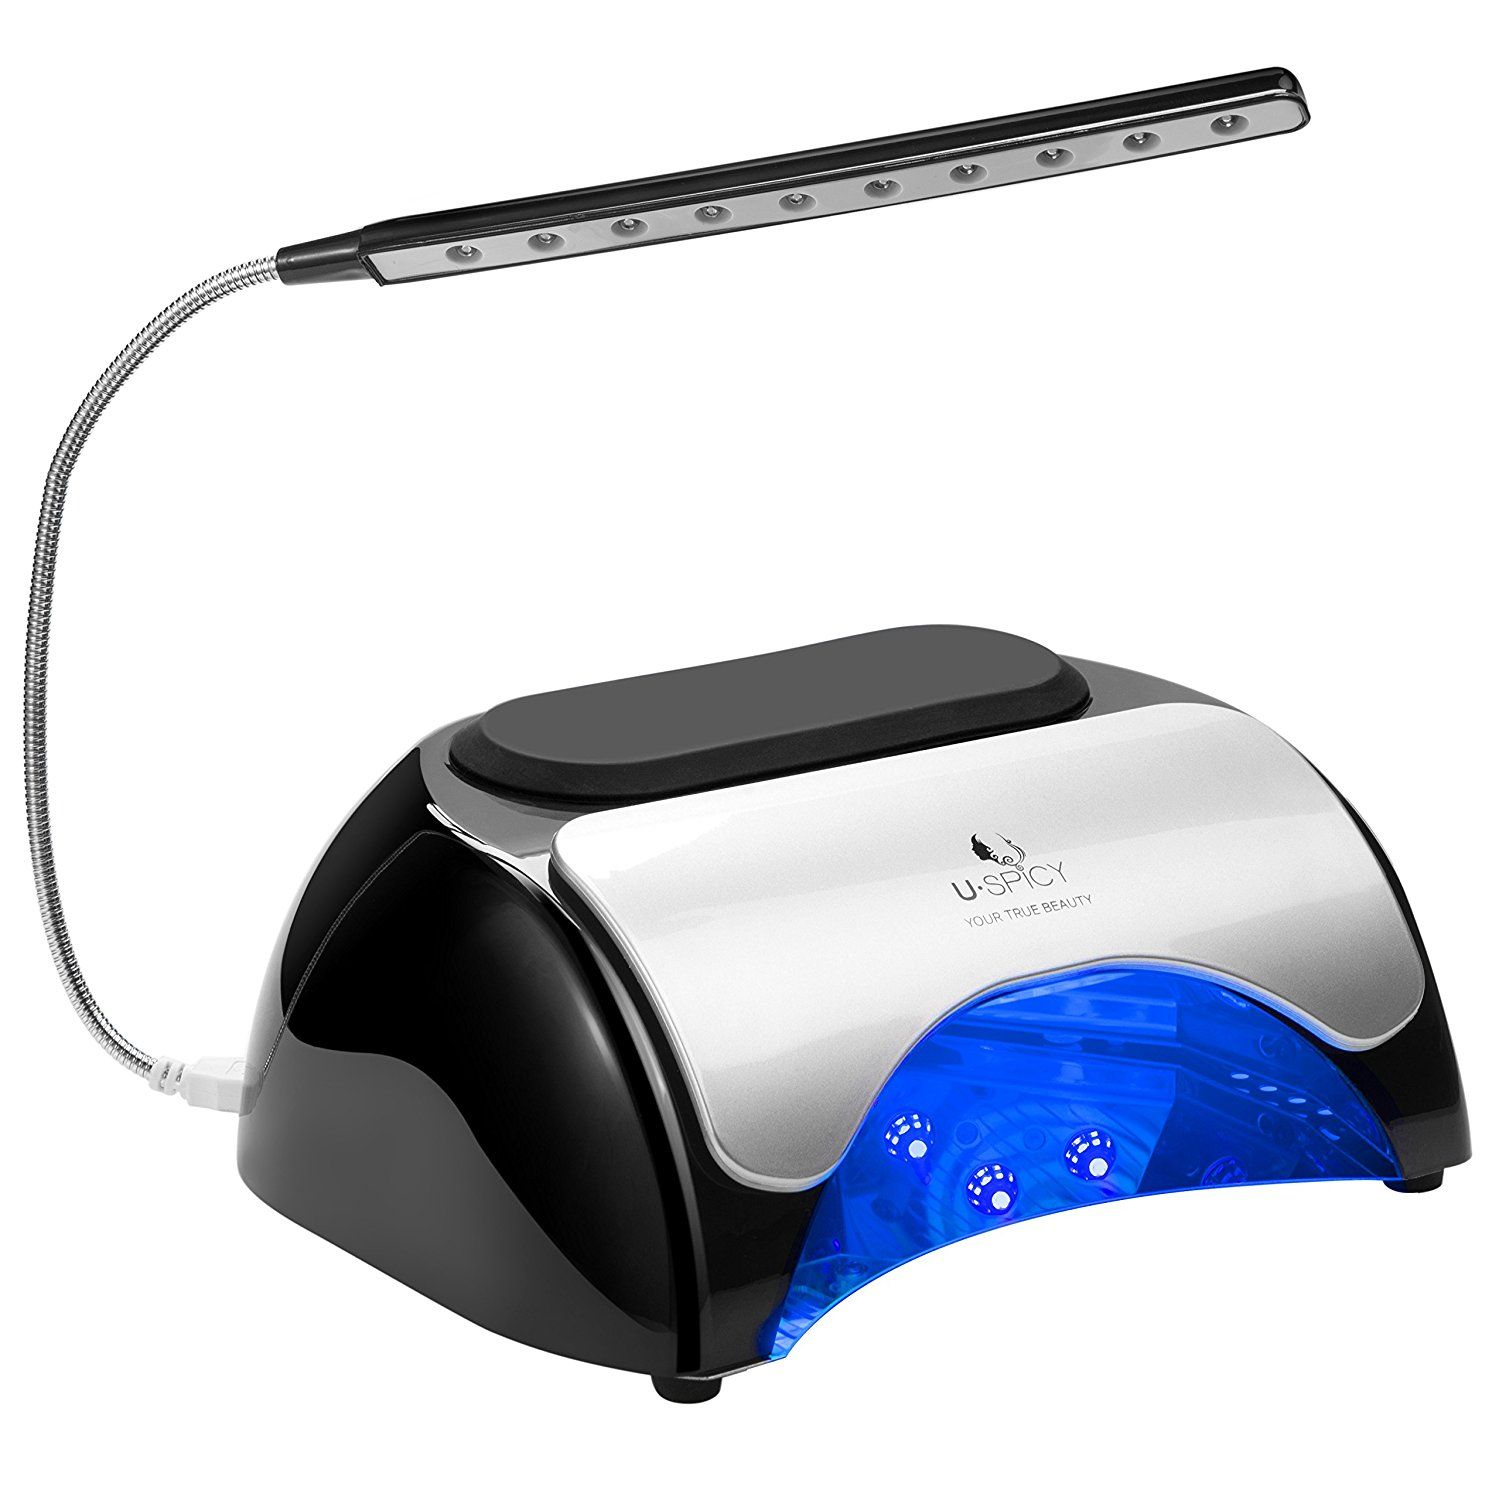 Uspicy 48w Led Uv Nail Lamp For Gel Polishes With Automatic Sensor Pull Down Cover Usb Light Led Nail Lamp Uv Nails Uv Nail Lamp